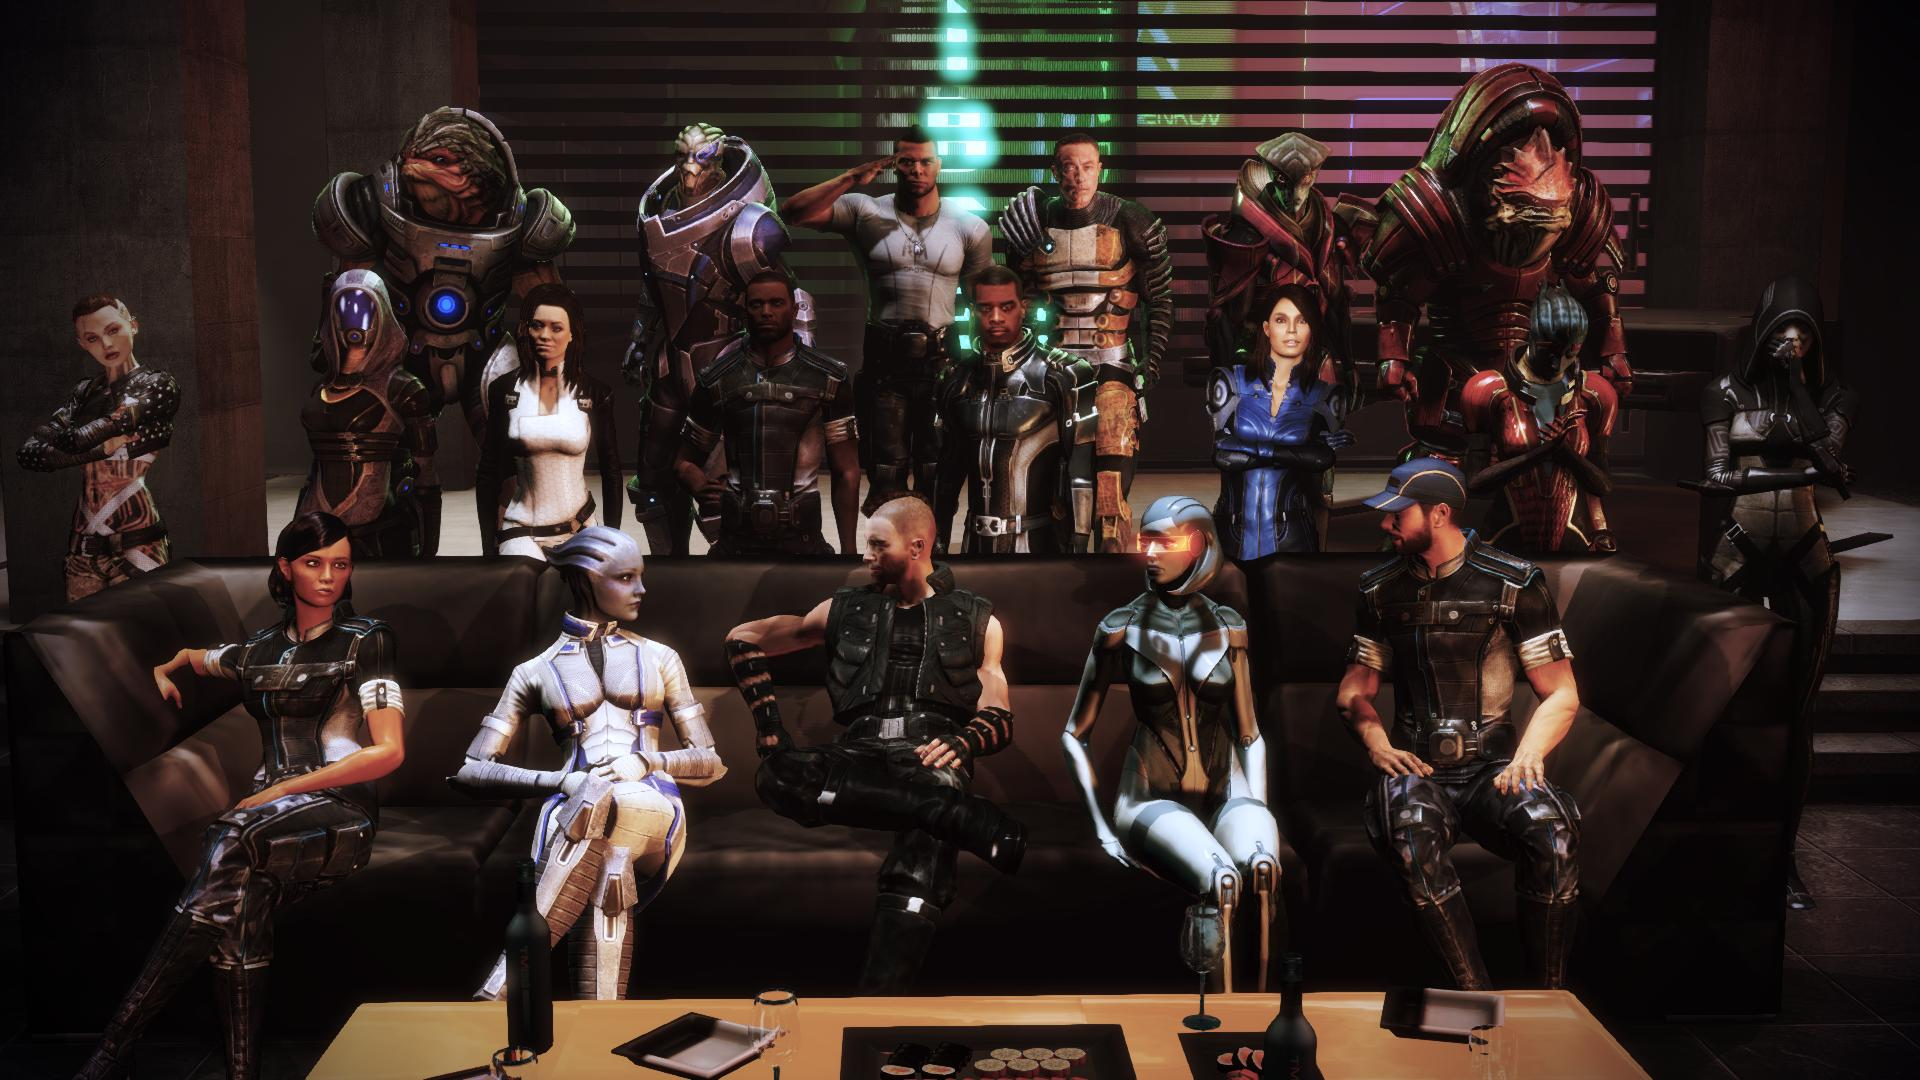 Mass effect 3 adult thumbs